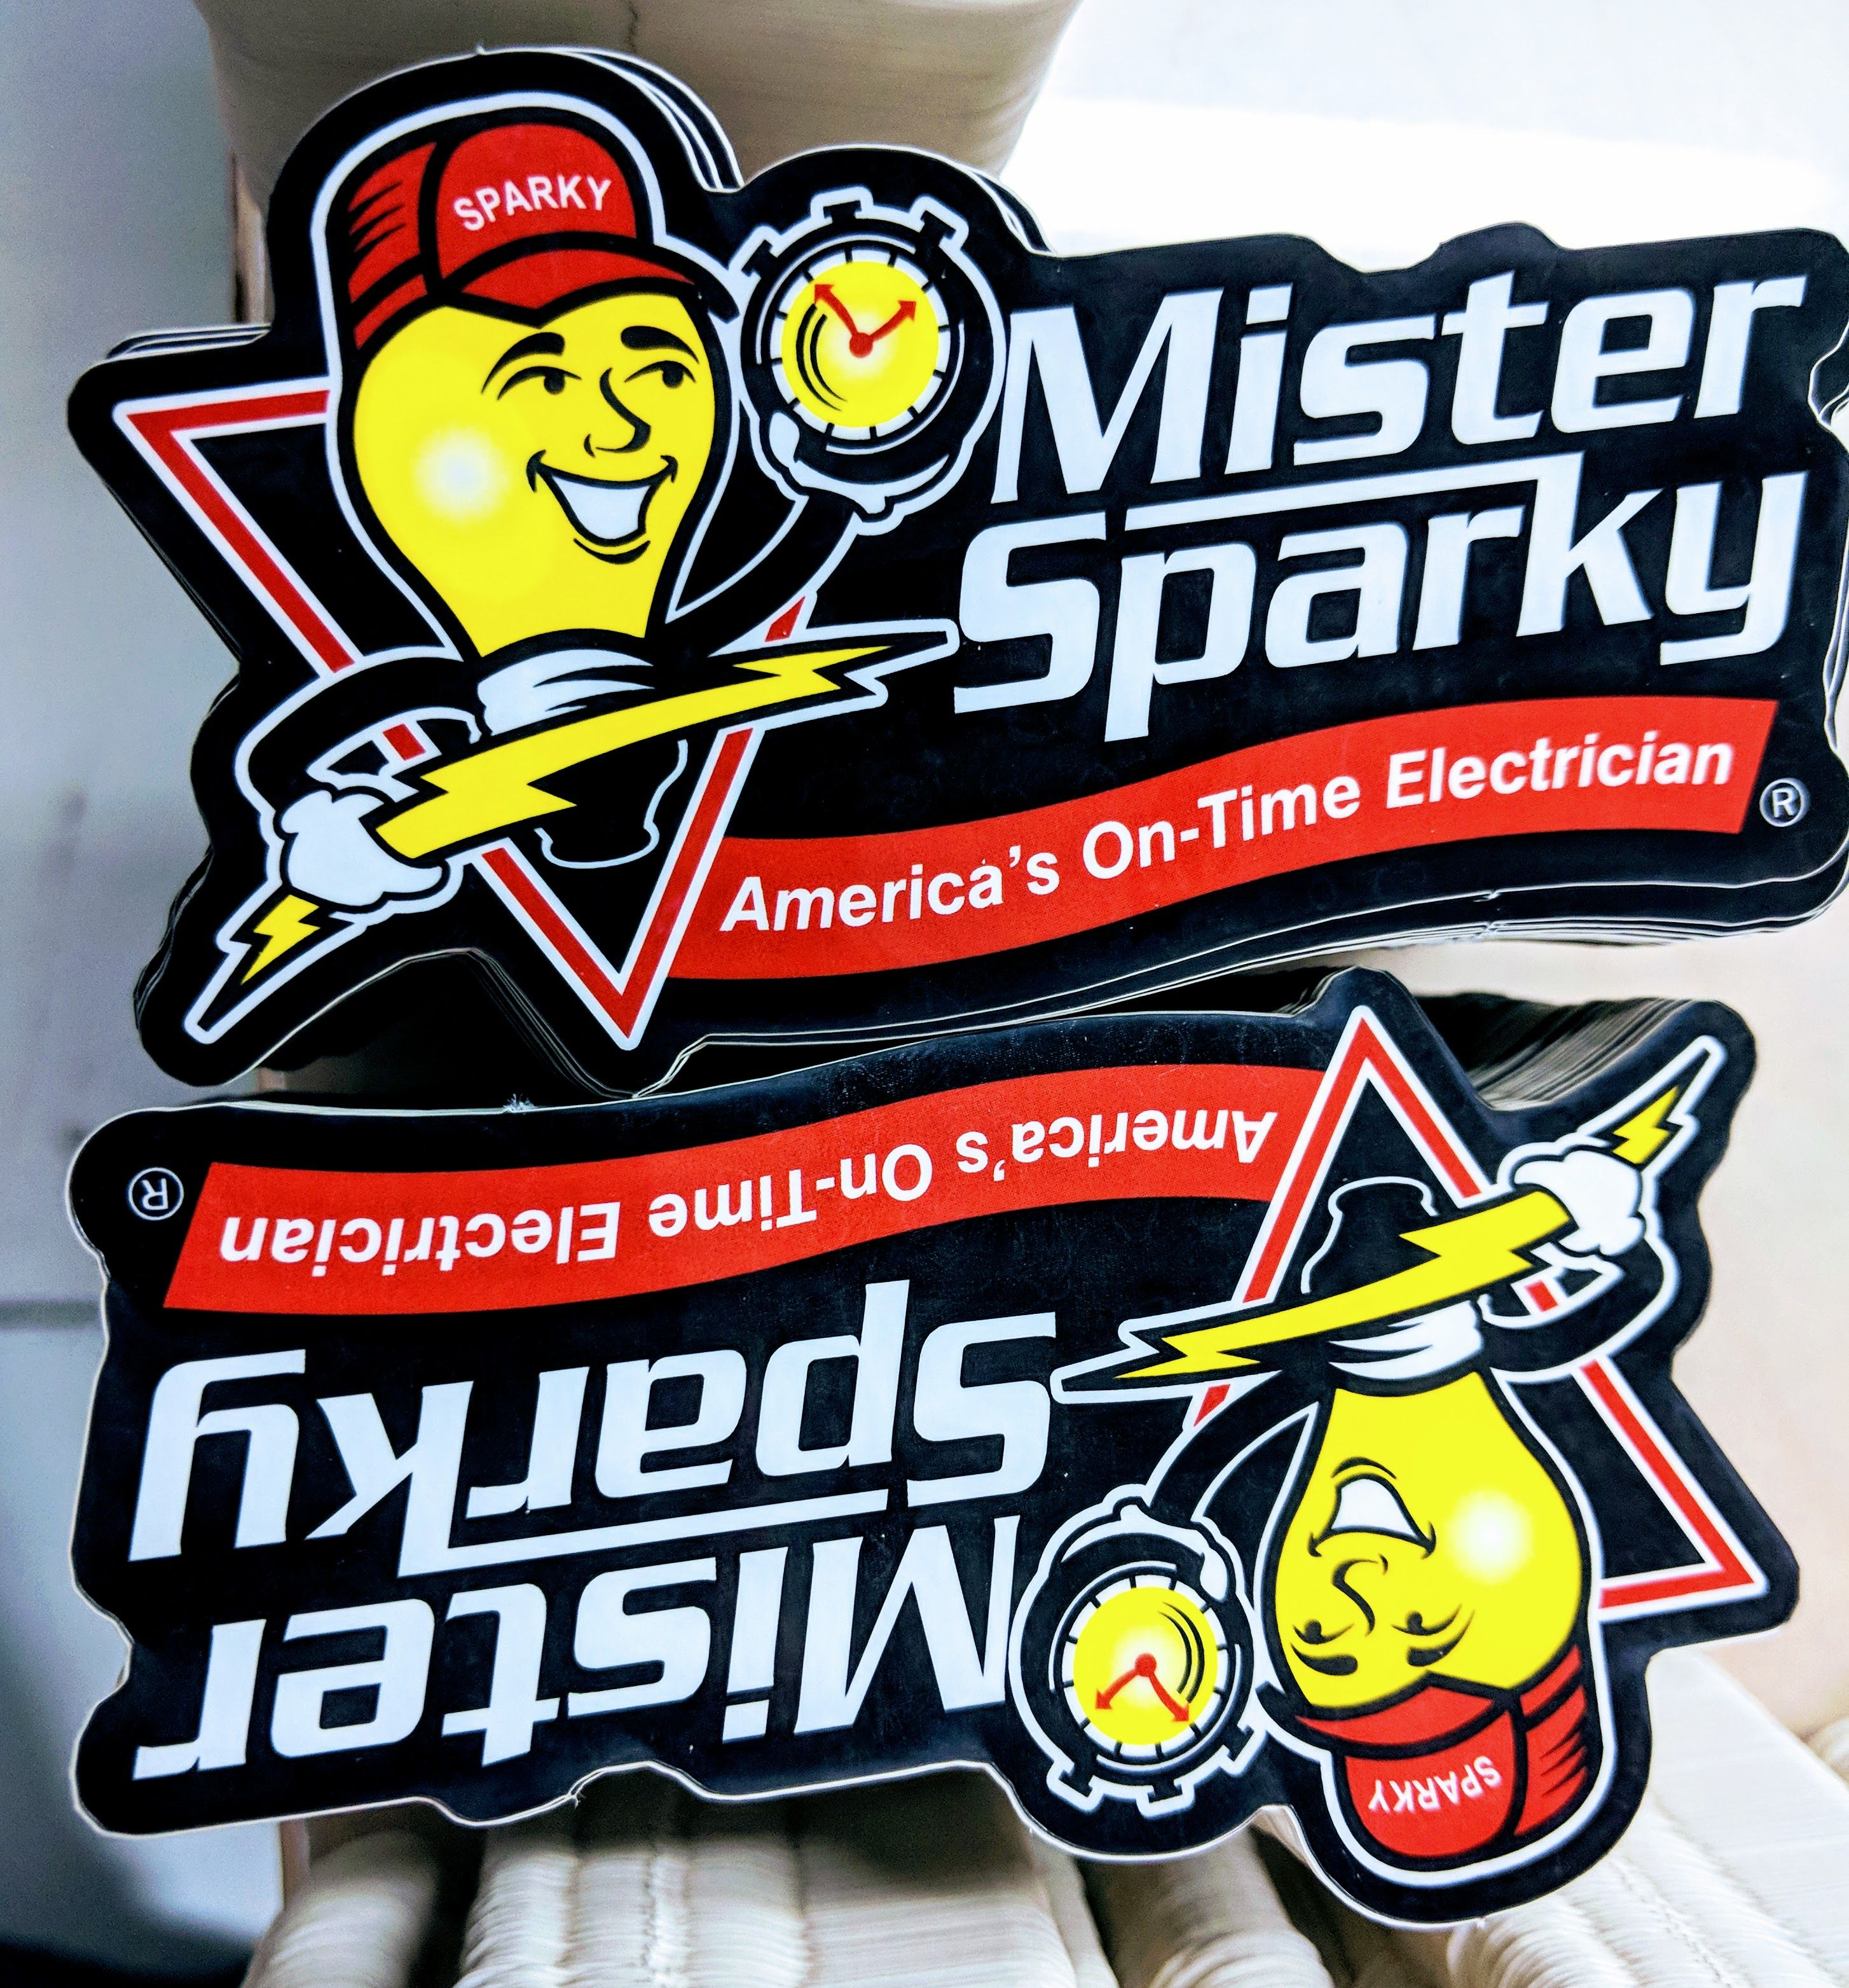 Mister sparky san antonio offers a variety of residential⚡ services and they specialize in superior customer care one way they are promoting their